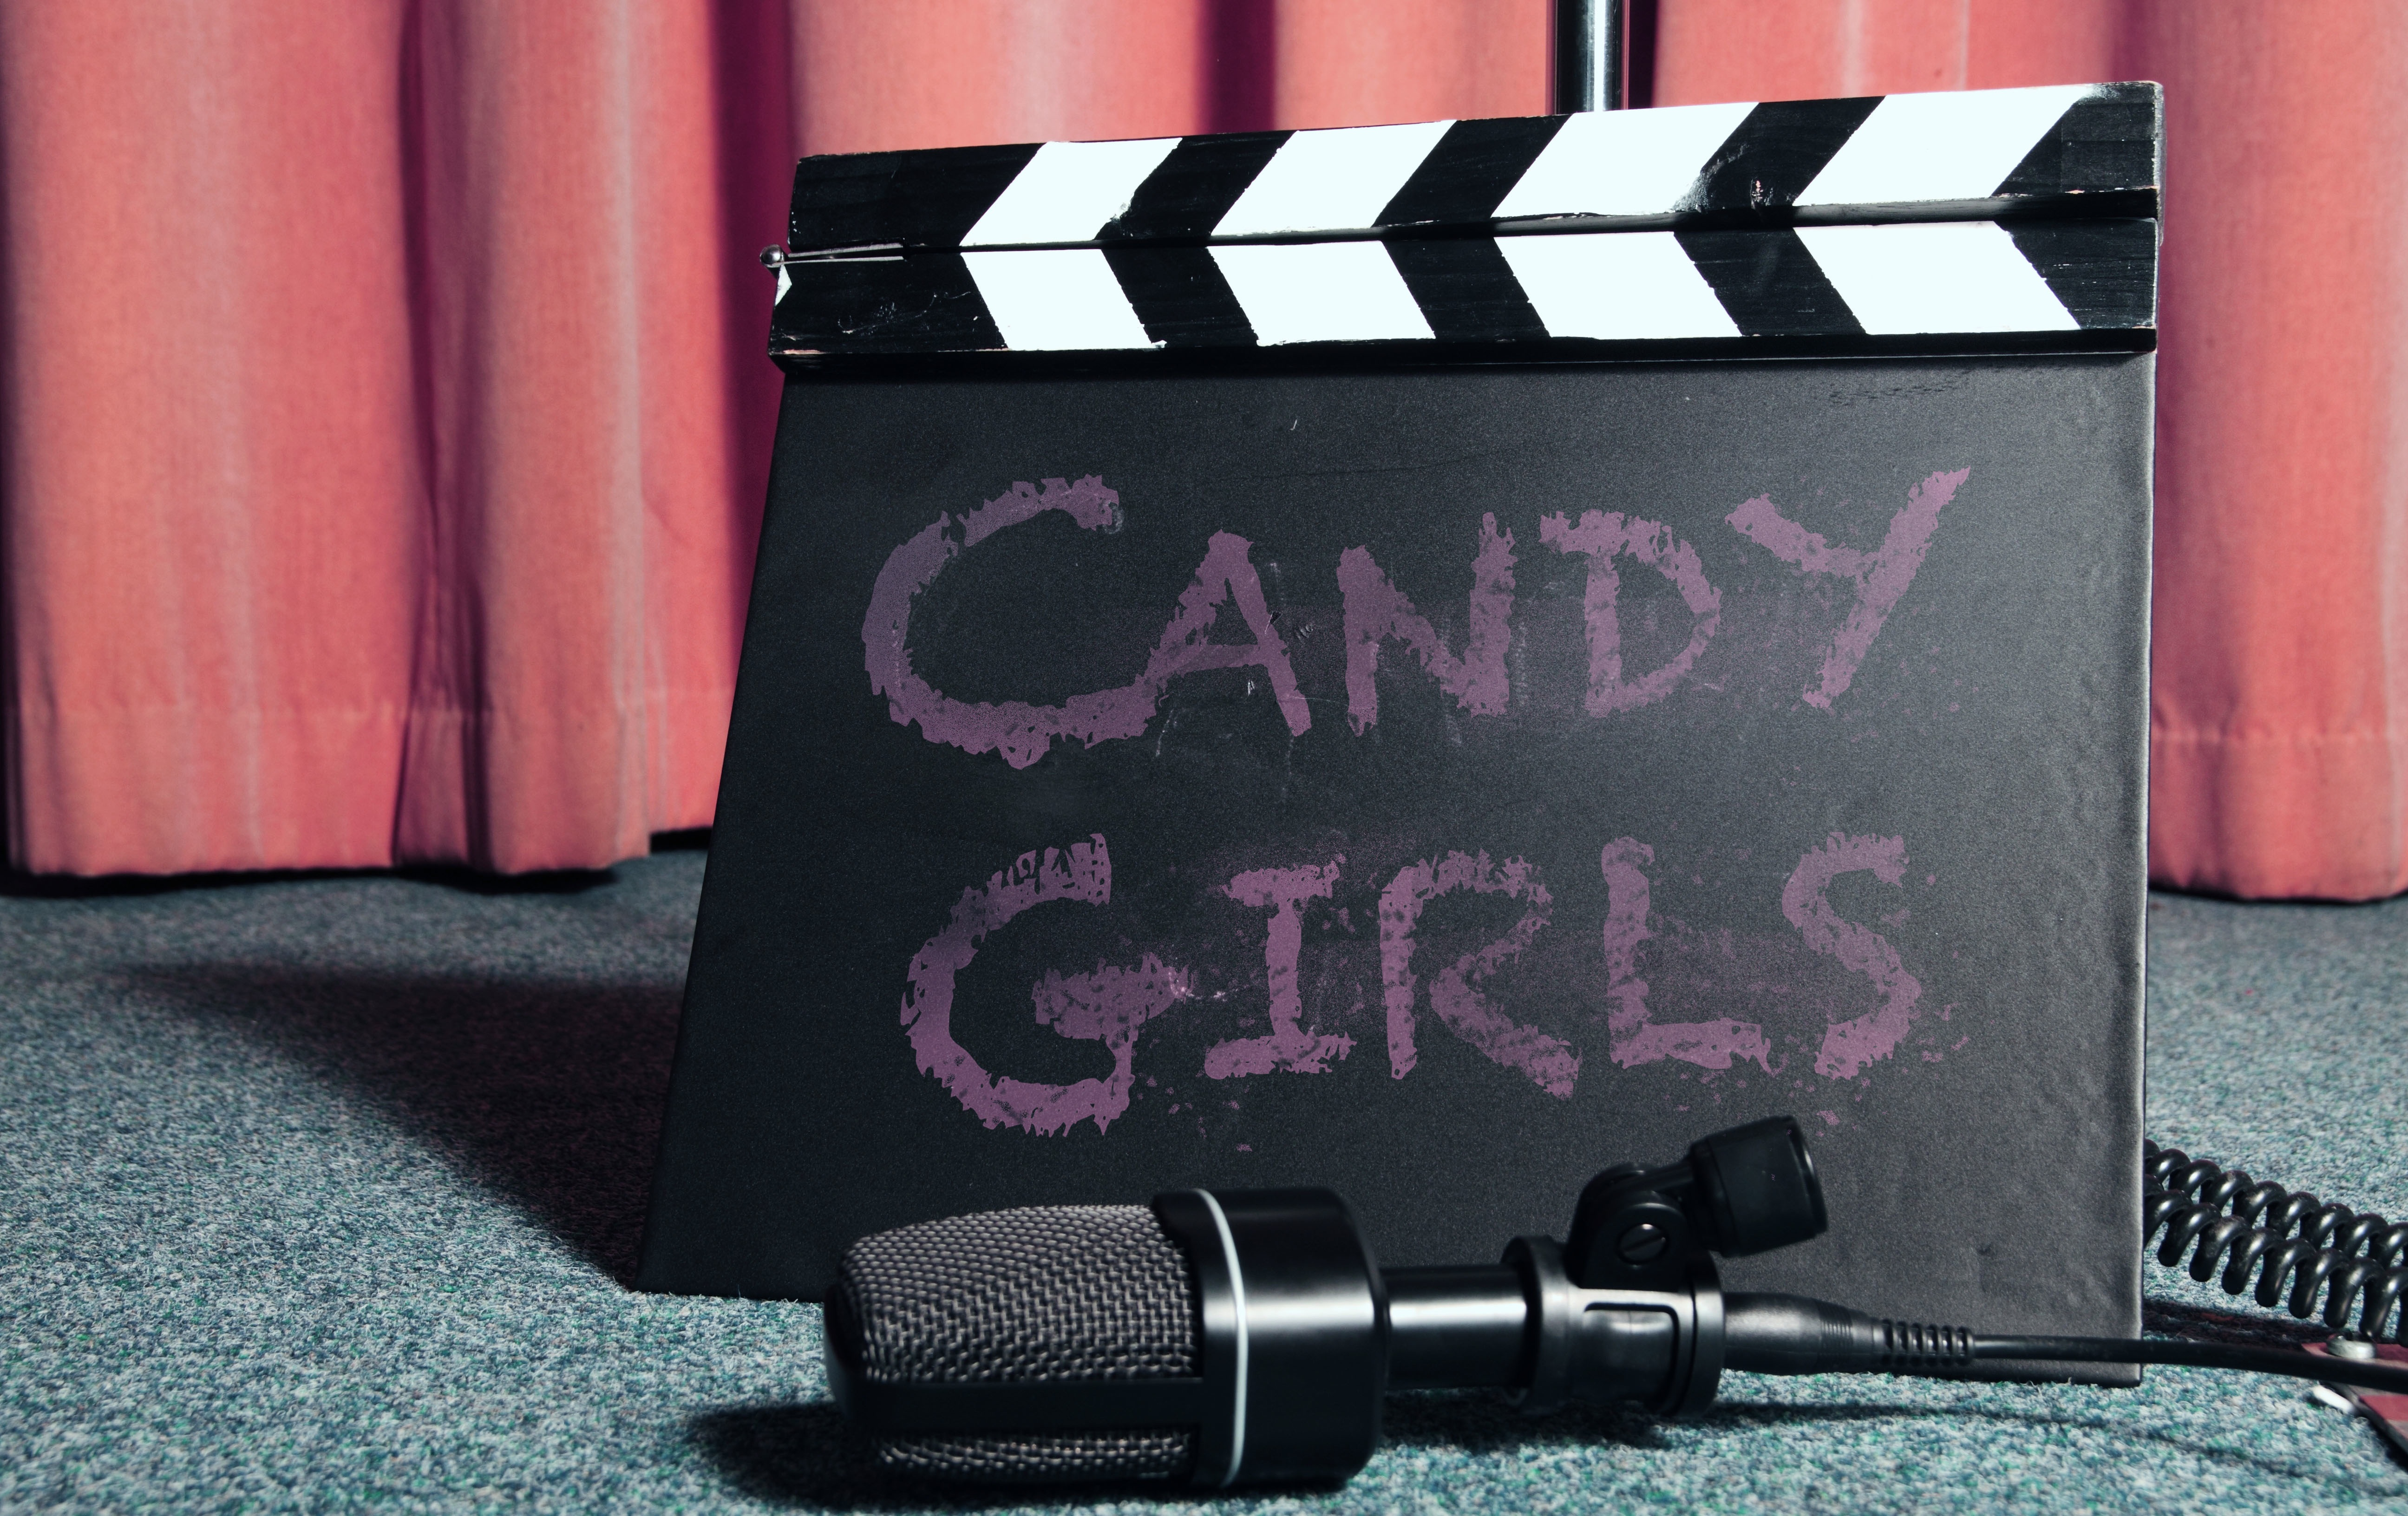 The Candy Girls clapper board